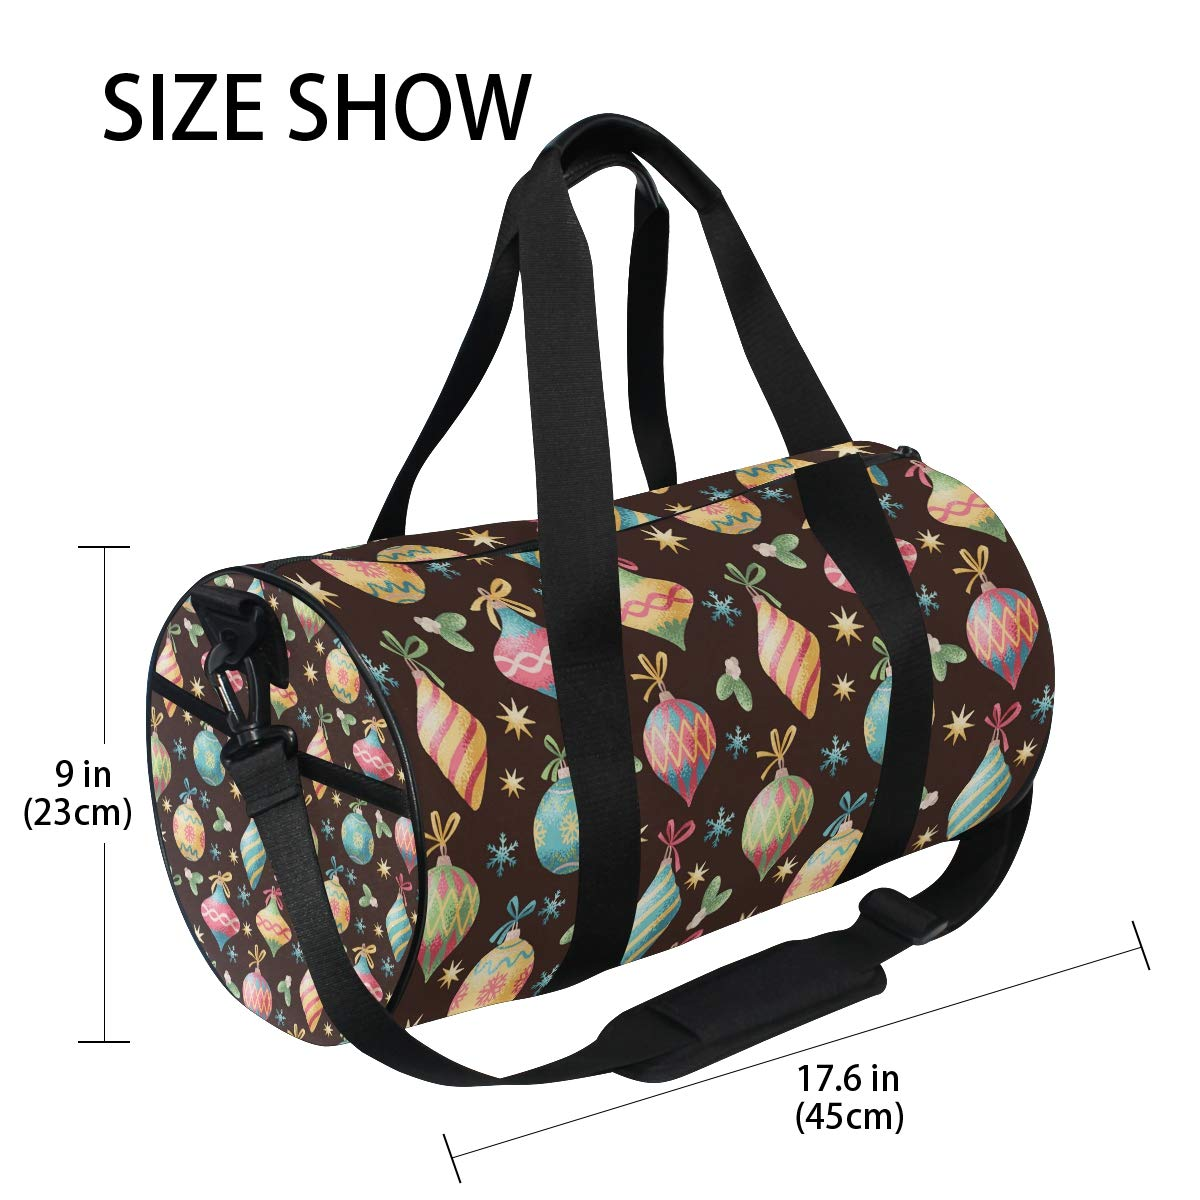 Waterproof Shoulder Bag. Christmas Peppermint Candy Snowman Popular casual fitness bag,Non-Slip Wearable Crossbody Bag